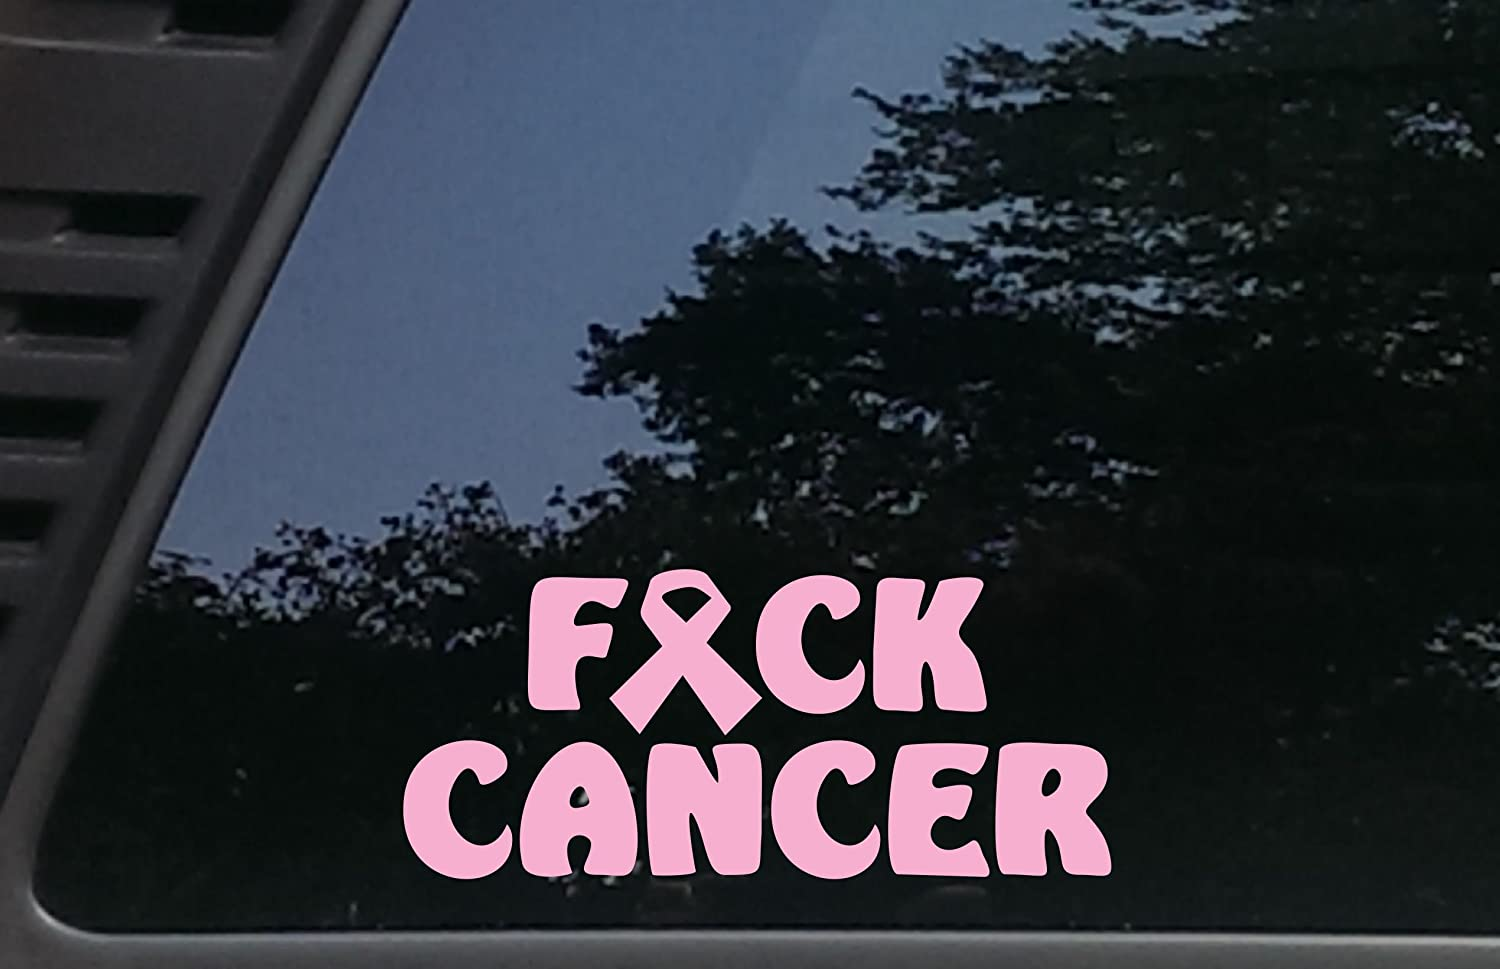 trucks smooth surface F*ck Cancer in PINK virtually any hard laptops tool boxes cars MacBook 8 x 3 1//2 die cut vinyl decal for windows